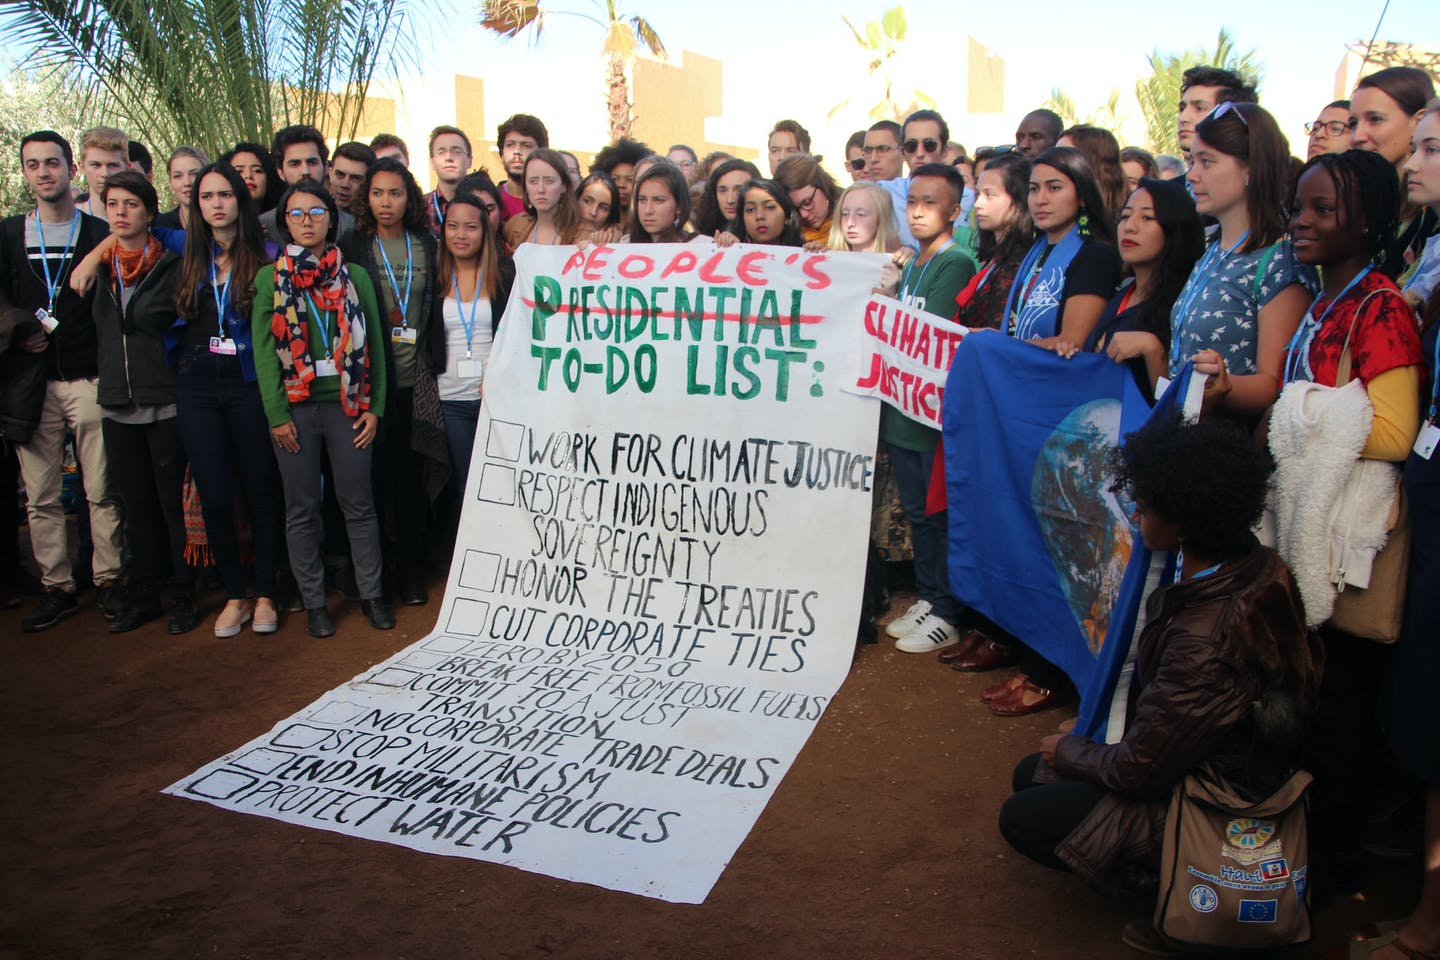 Youth at COP22 react to Donald Trump's presidency